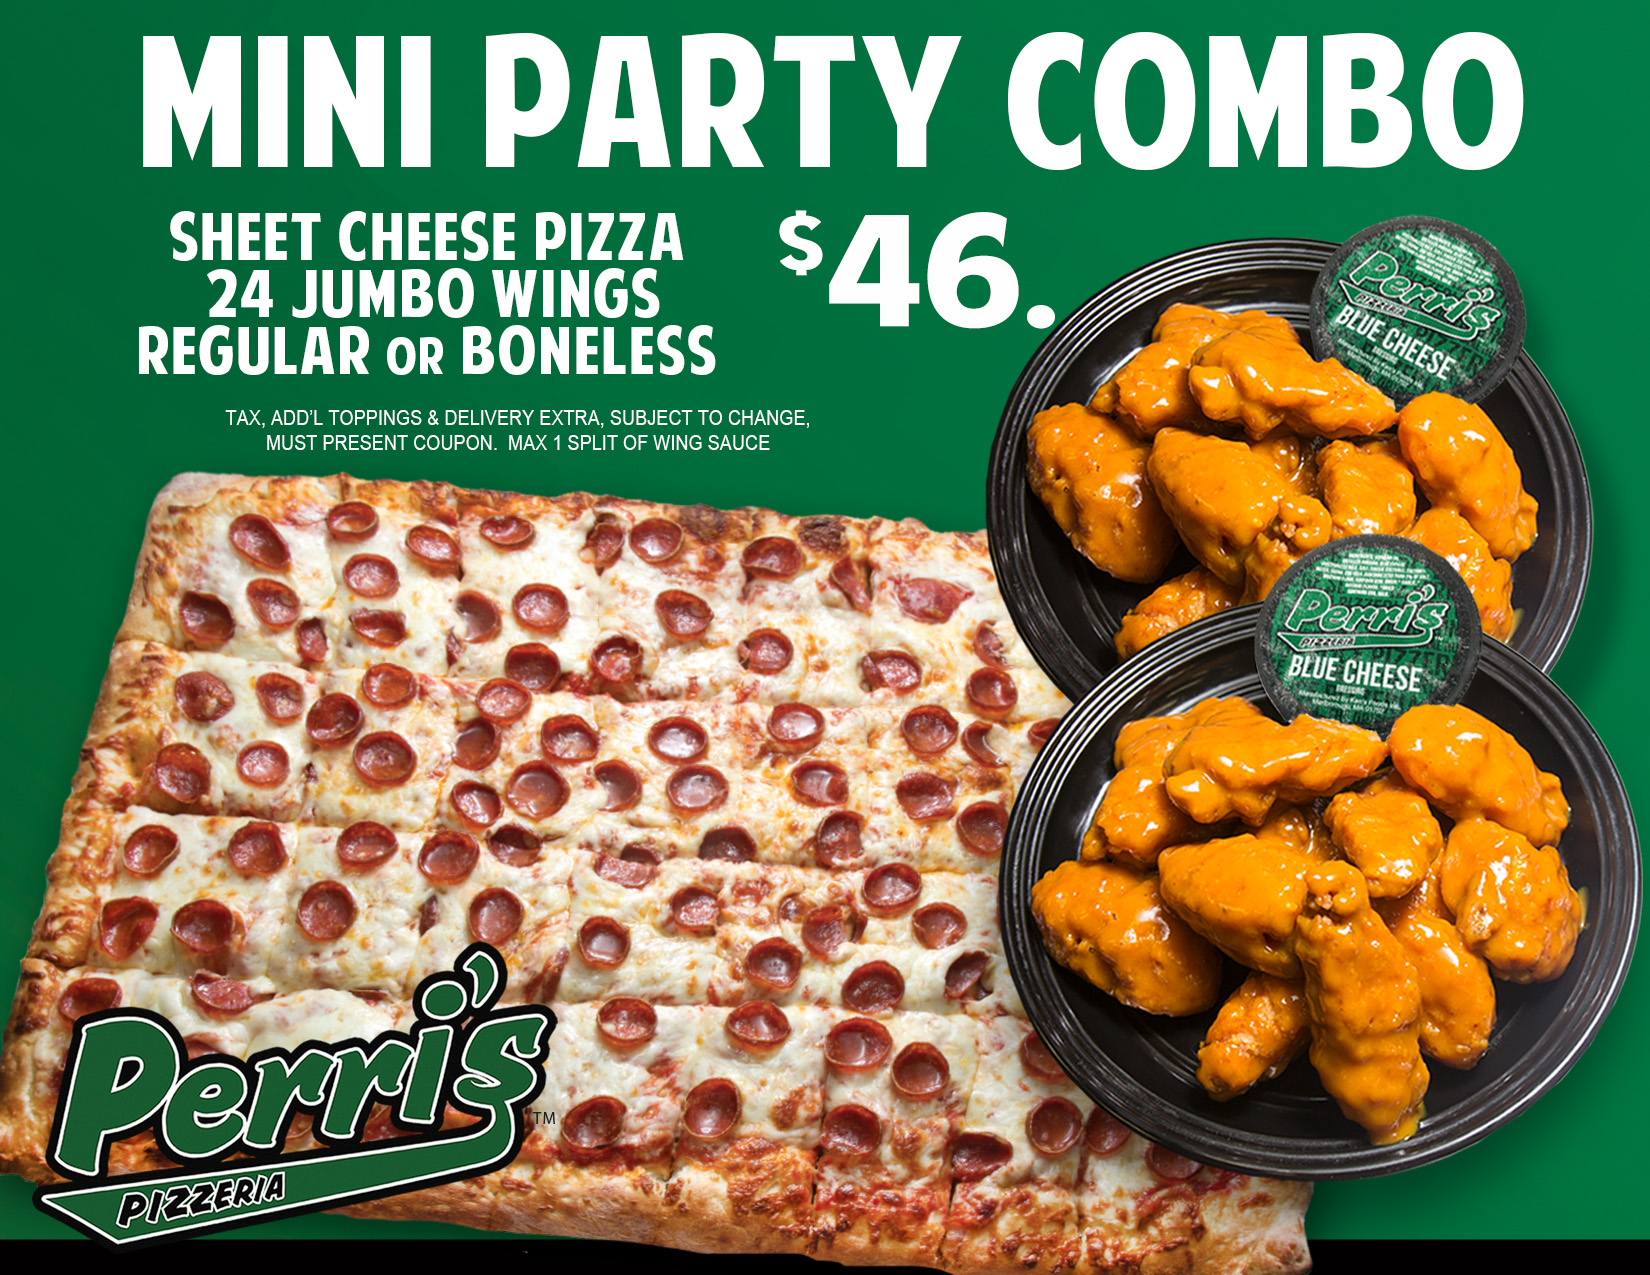 mini party combo pizza and wings sheet pizza deal